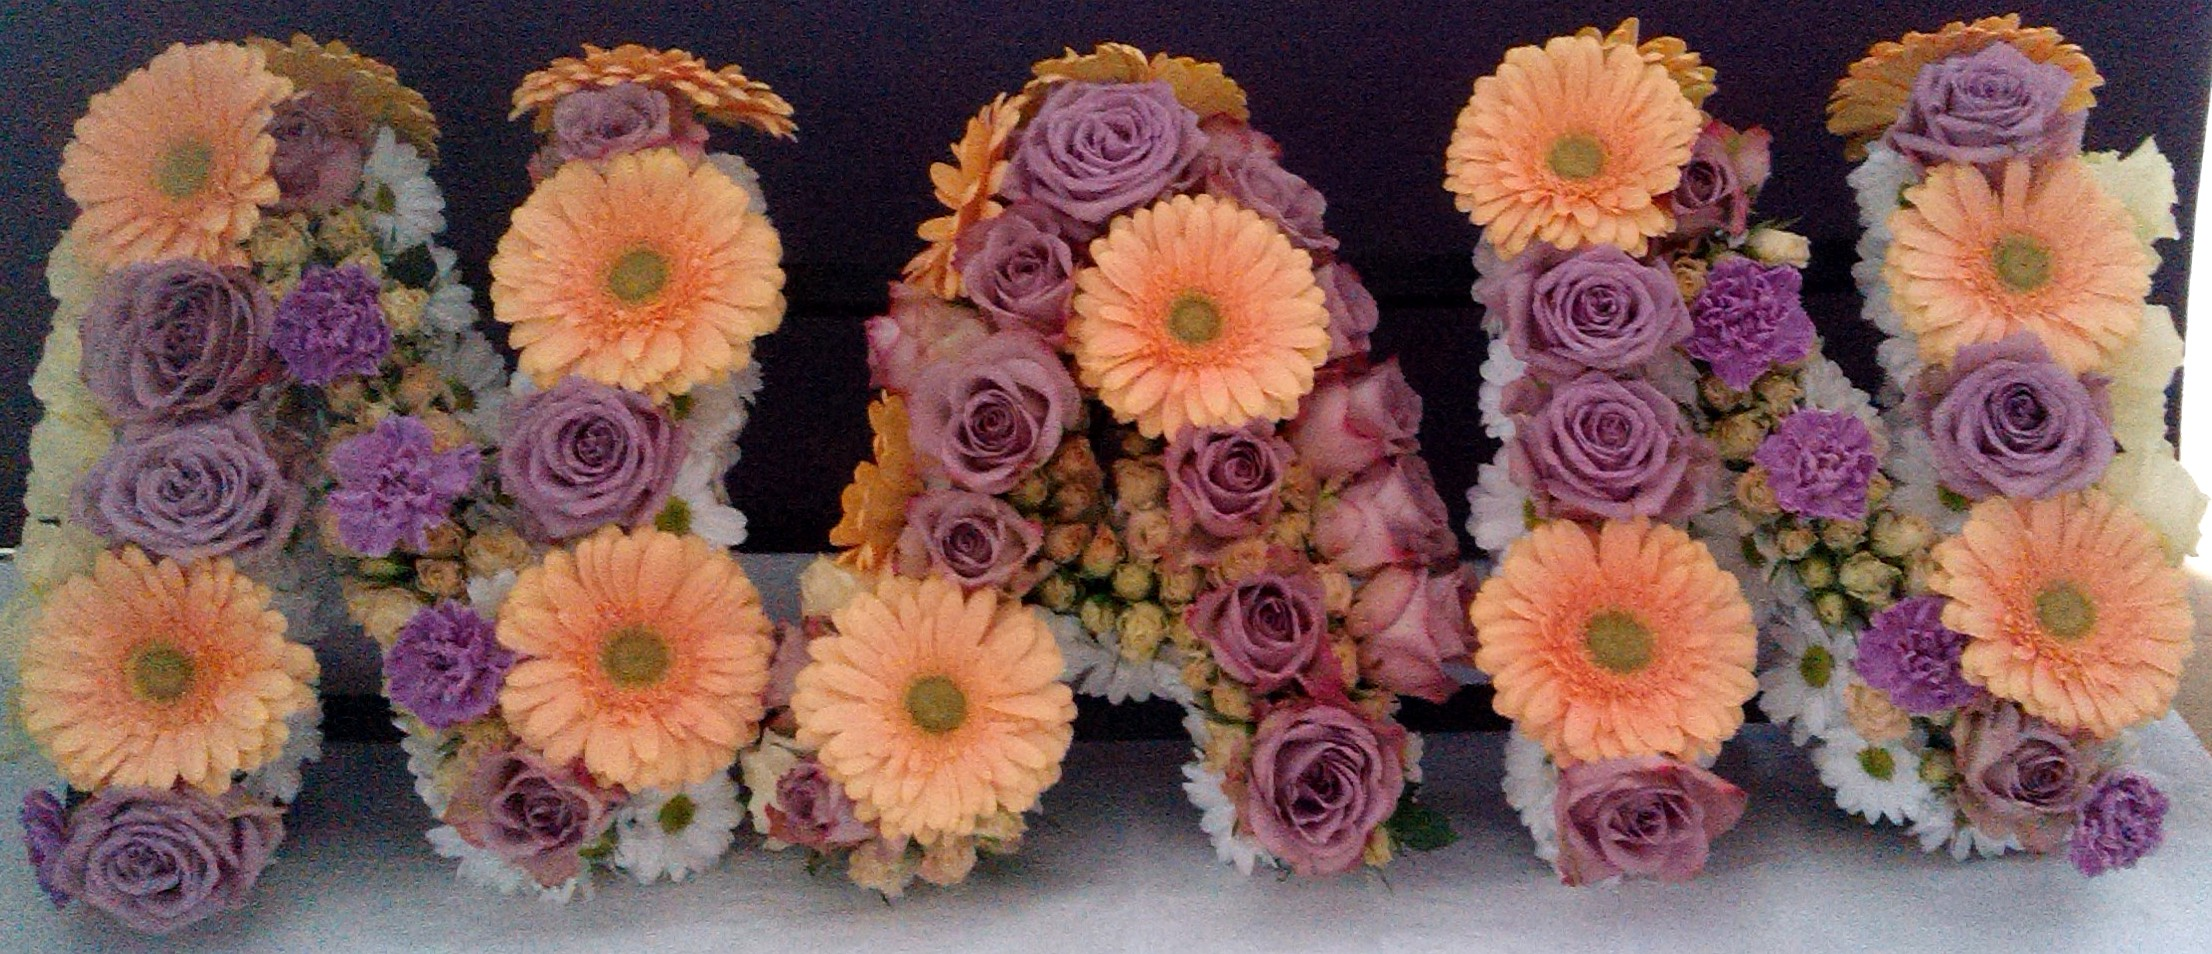 Respectful funerals shrinking violet bespoke floristry nan funeral flowers in peach and pink izmirmasajfo